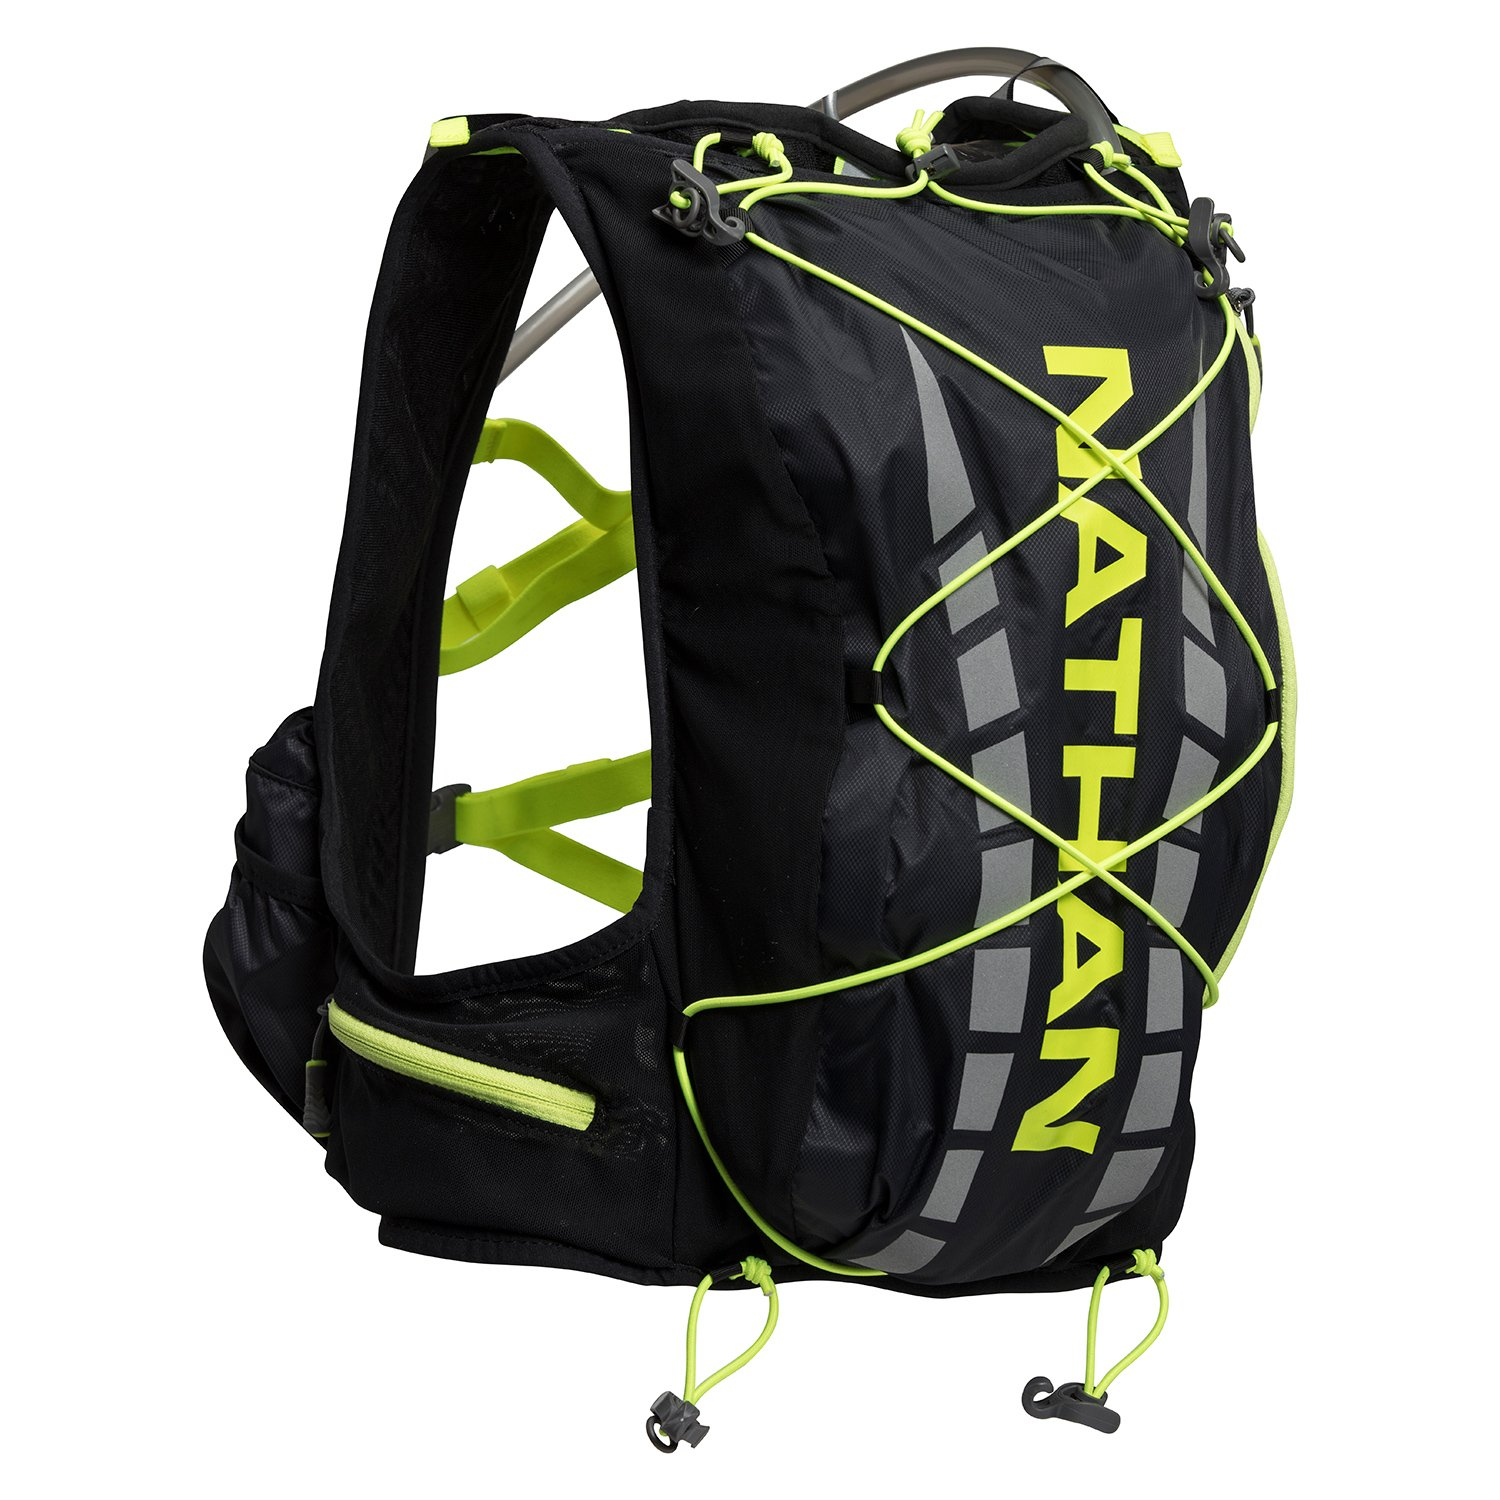 Nathan VaporAir Hydration Pack Running Vest w/ 2L Bladder